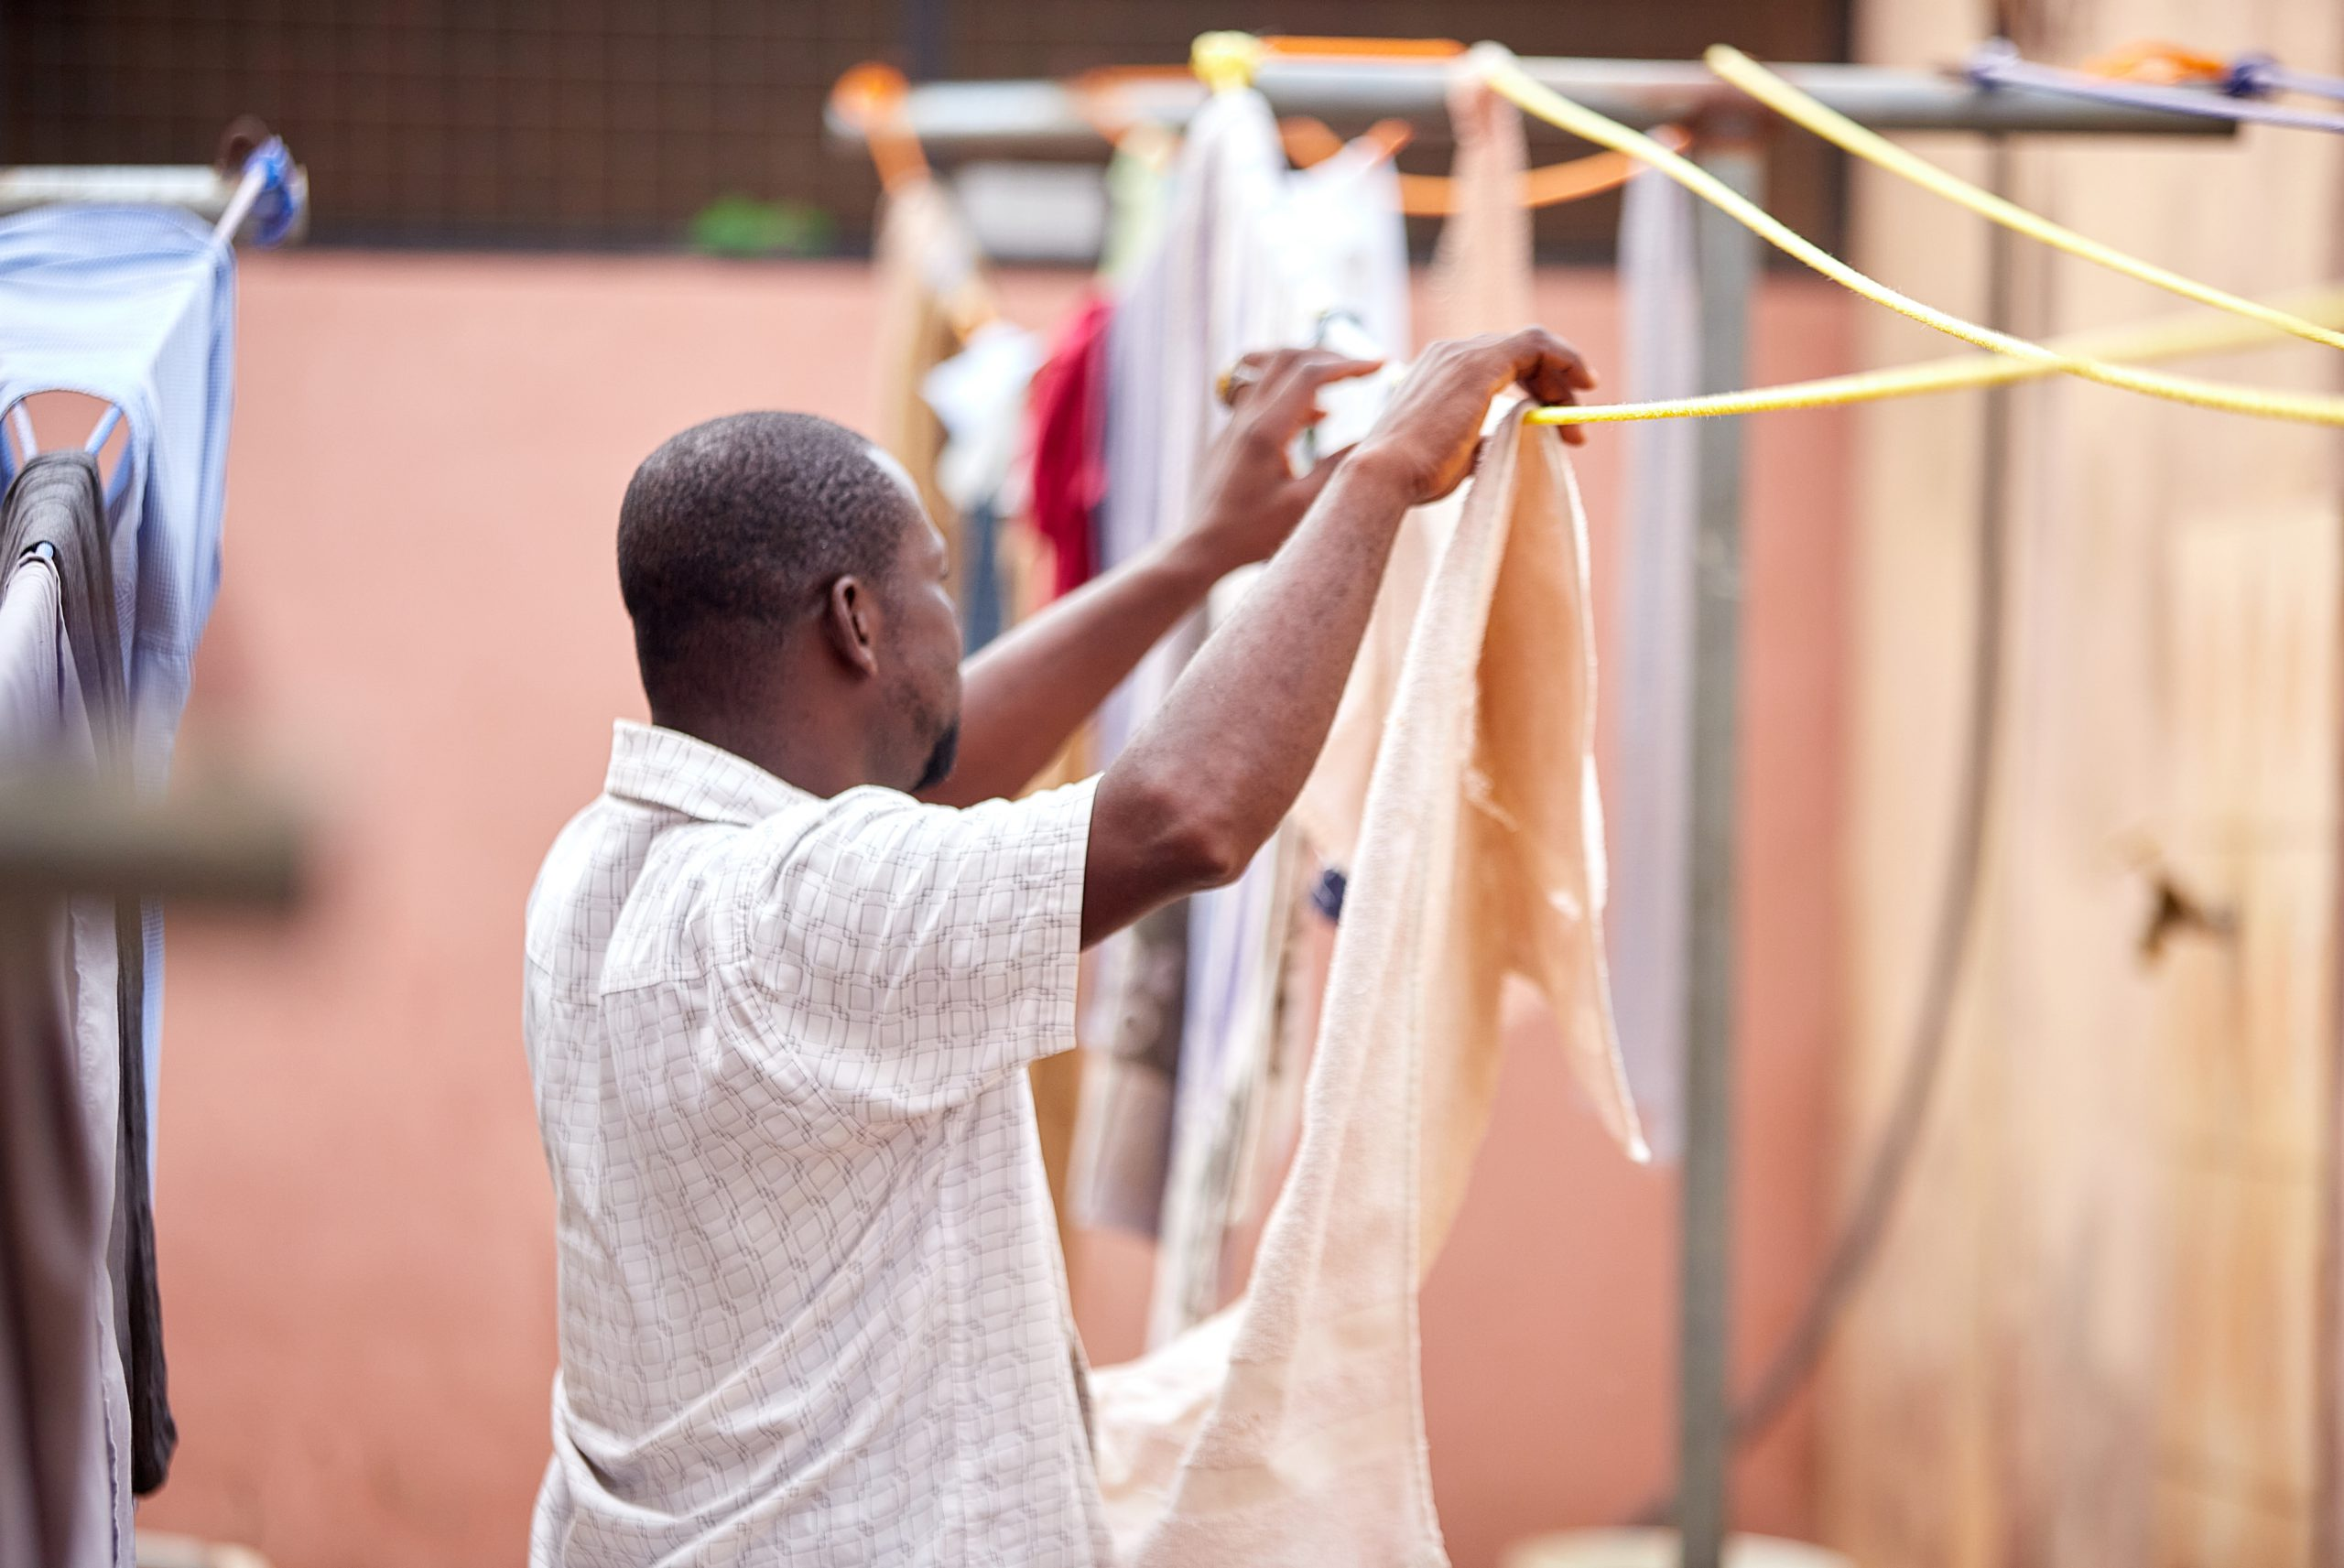 A Ghanaian man hanging clothes on a laundry line.